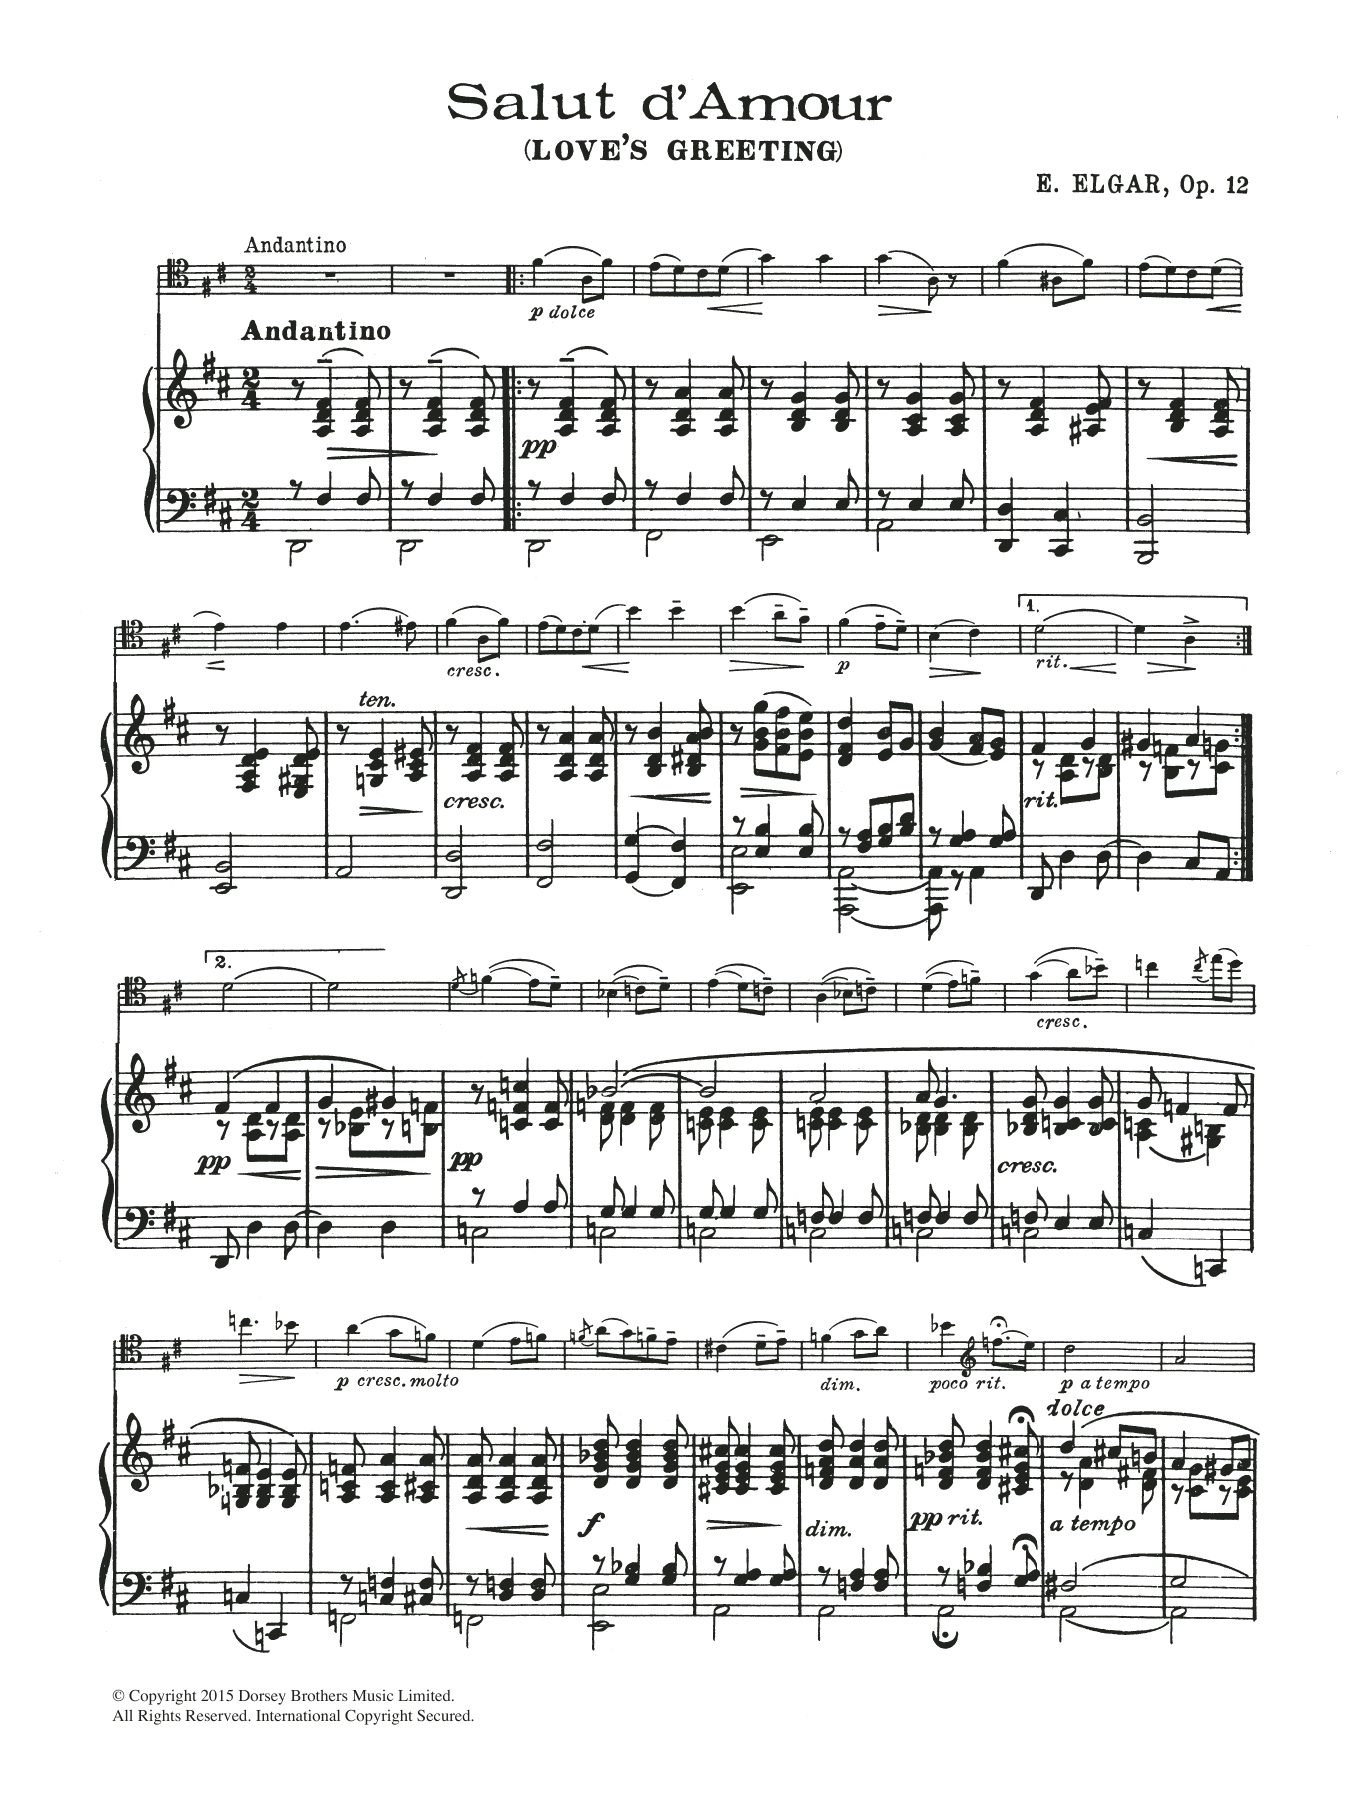 Salut D'Amour Sheet Music